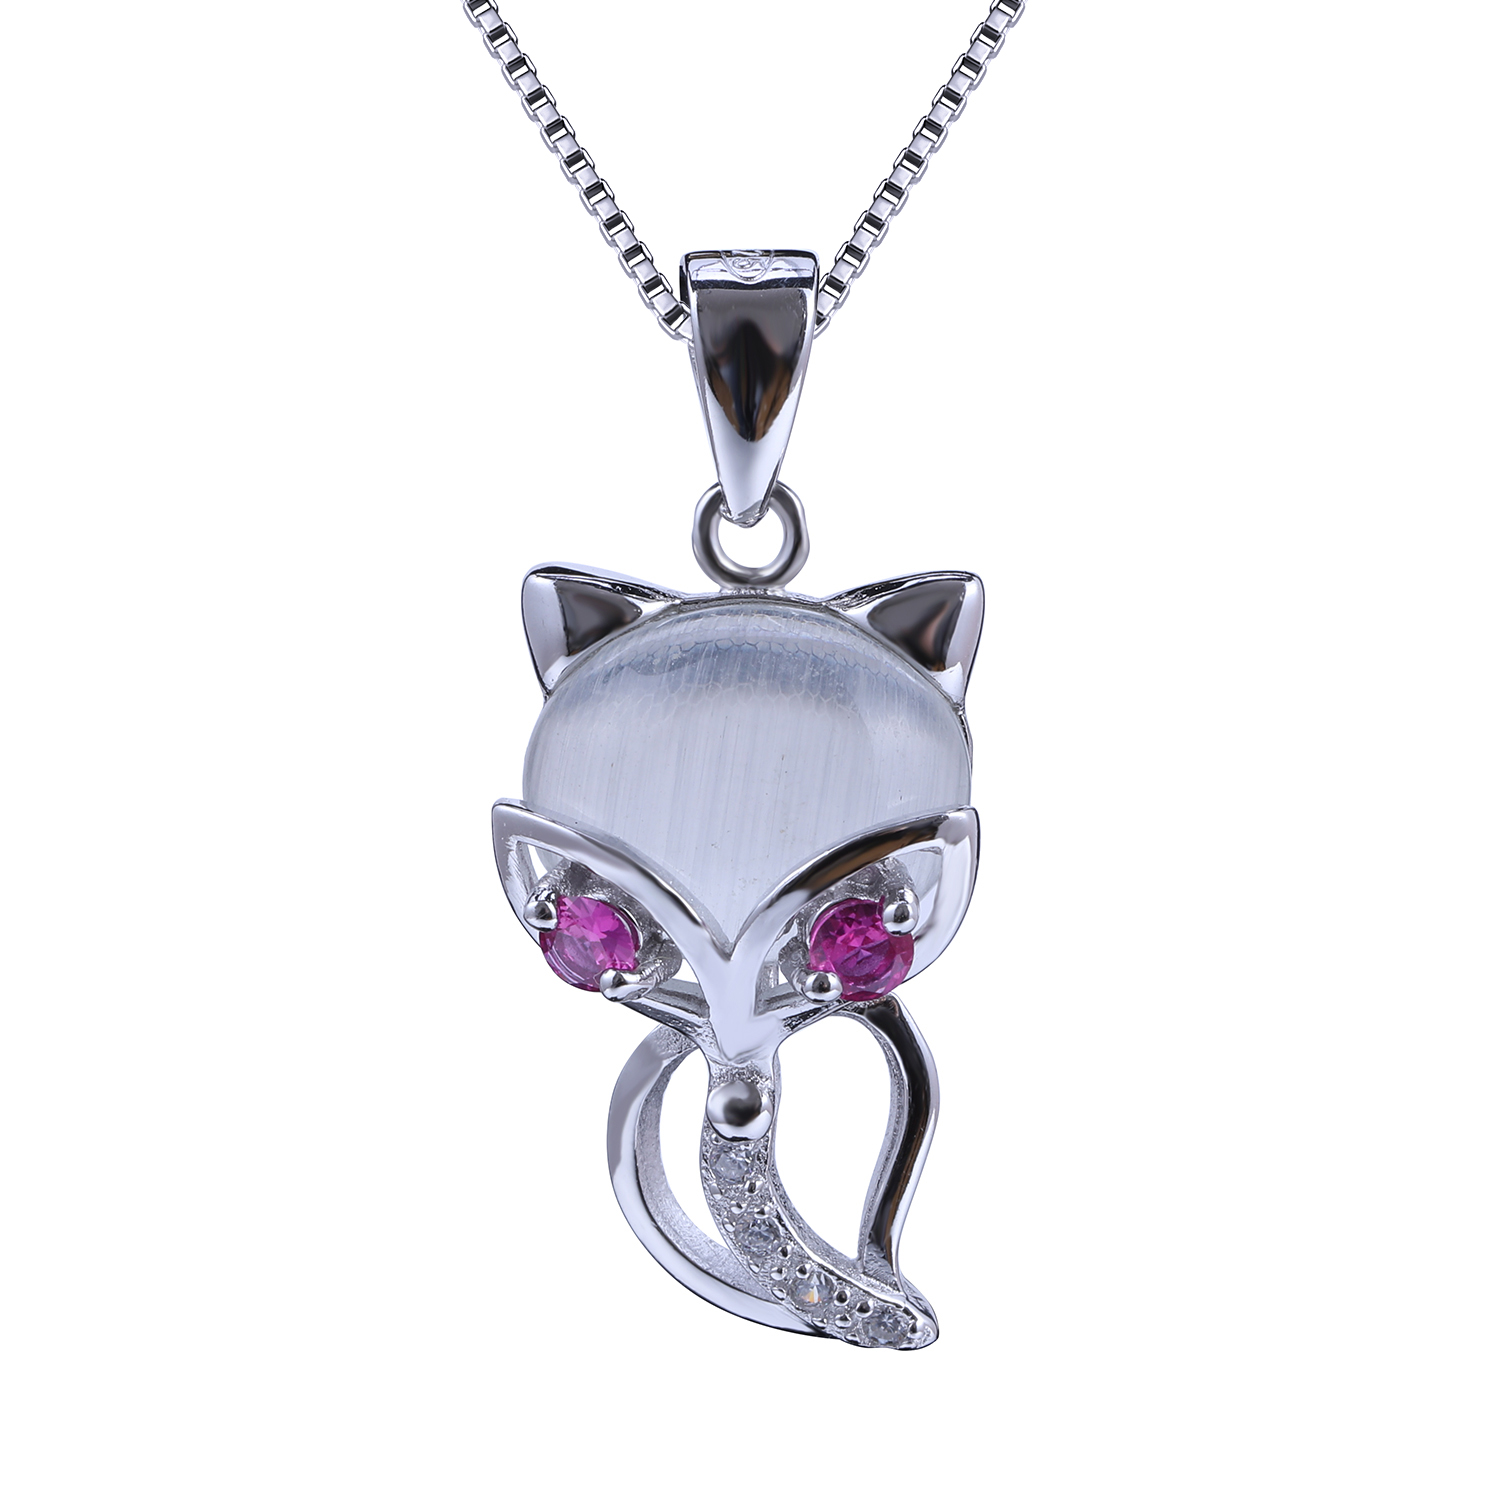 Fashionable Wholesales 925 Sterling Silver Costume Jewelry Necklaces For Women